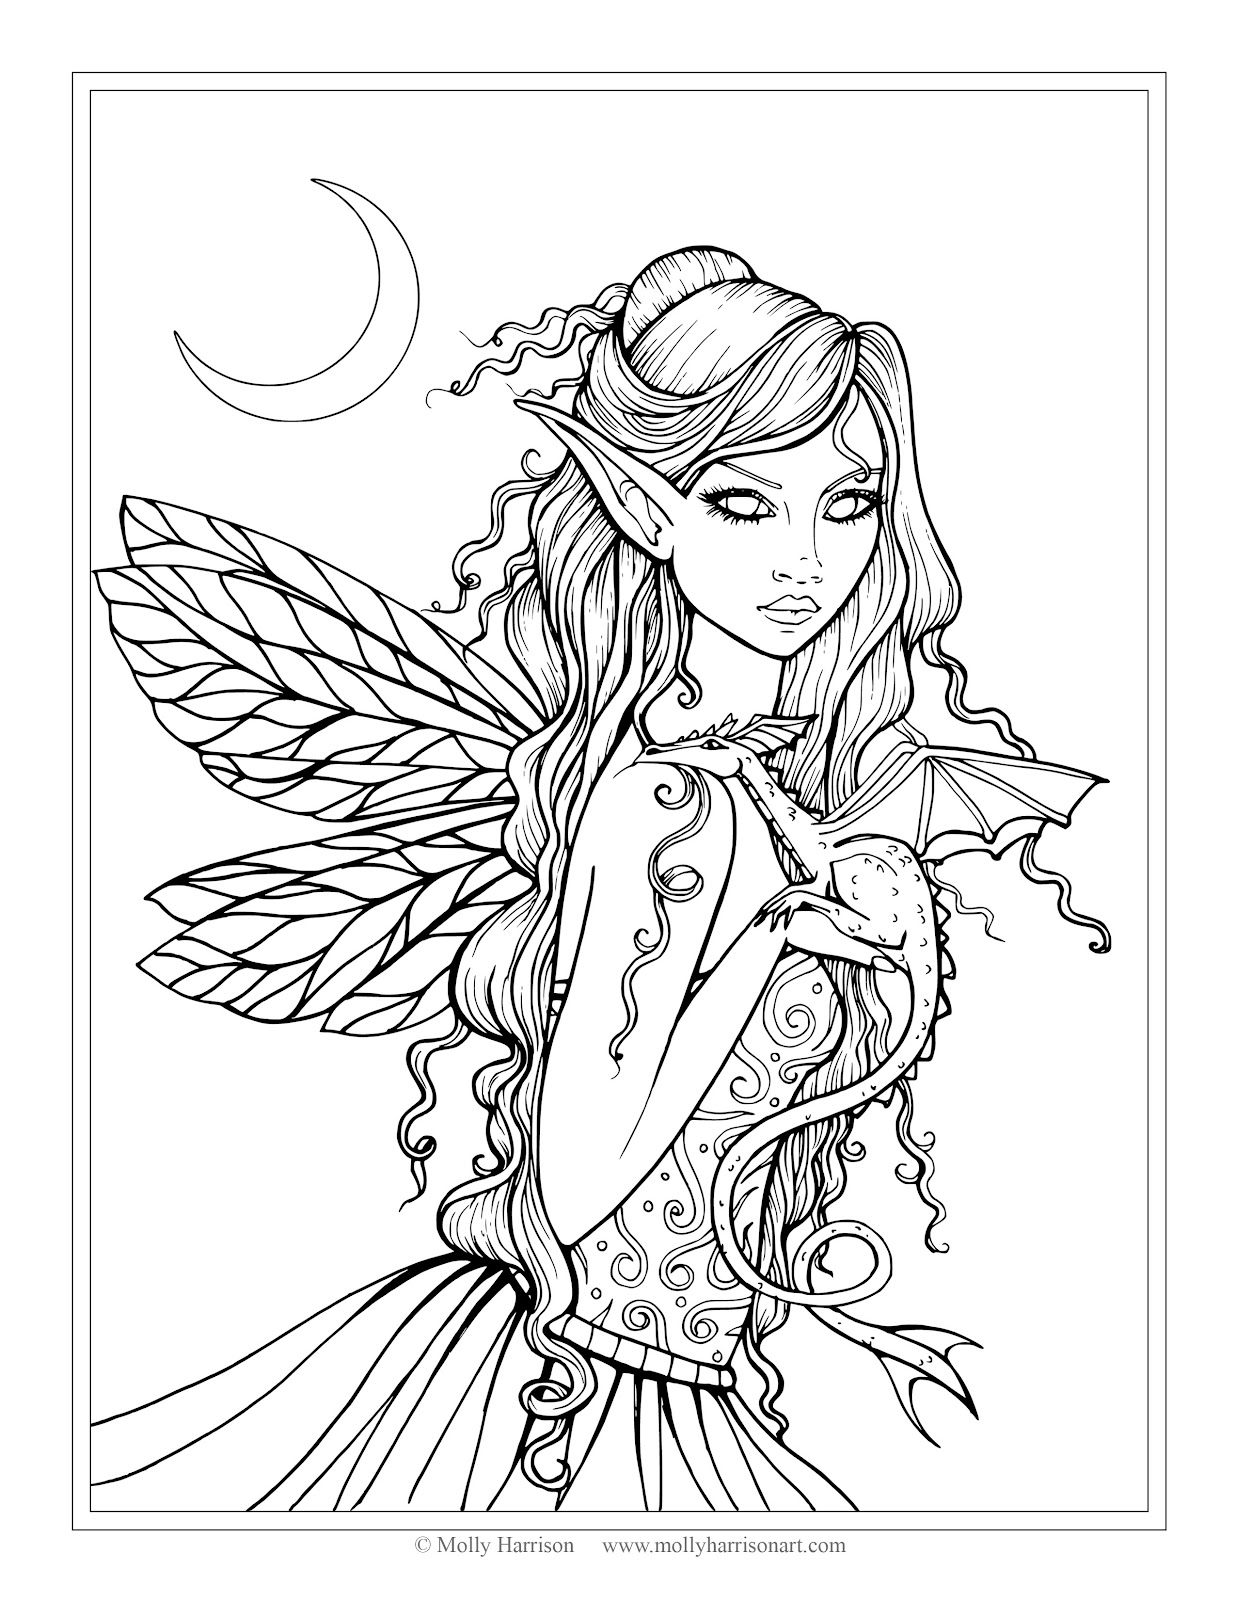 Free Fairy And Dragon Coloring Page By Molly Harrison Fantasy Art Amethyst Adult Pagescolouring